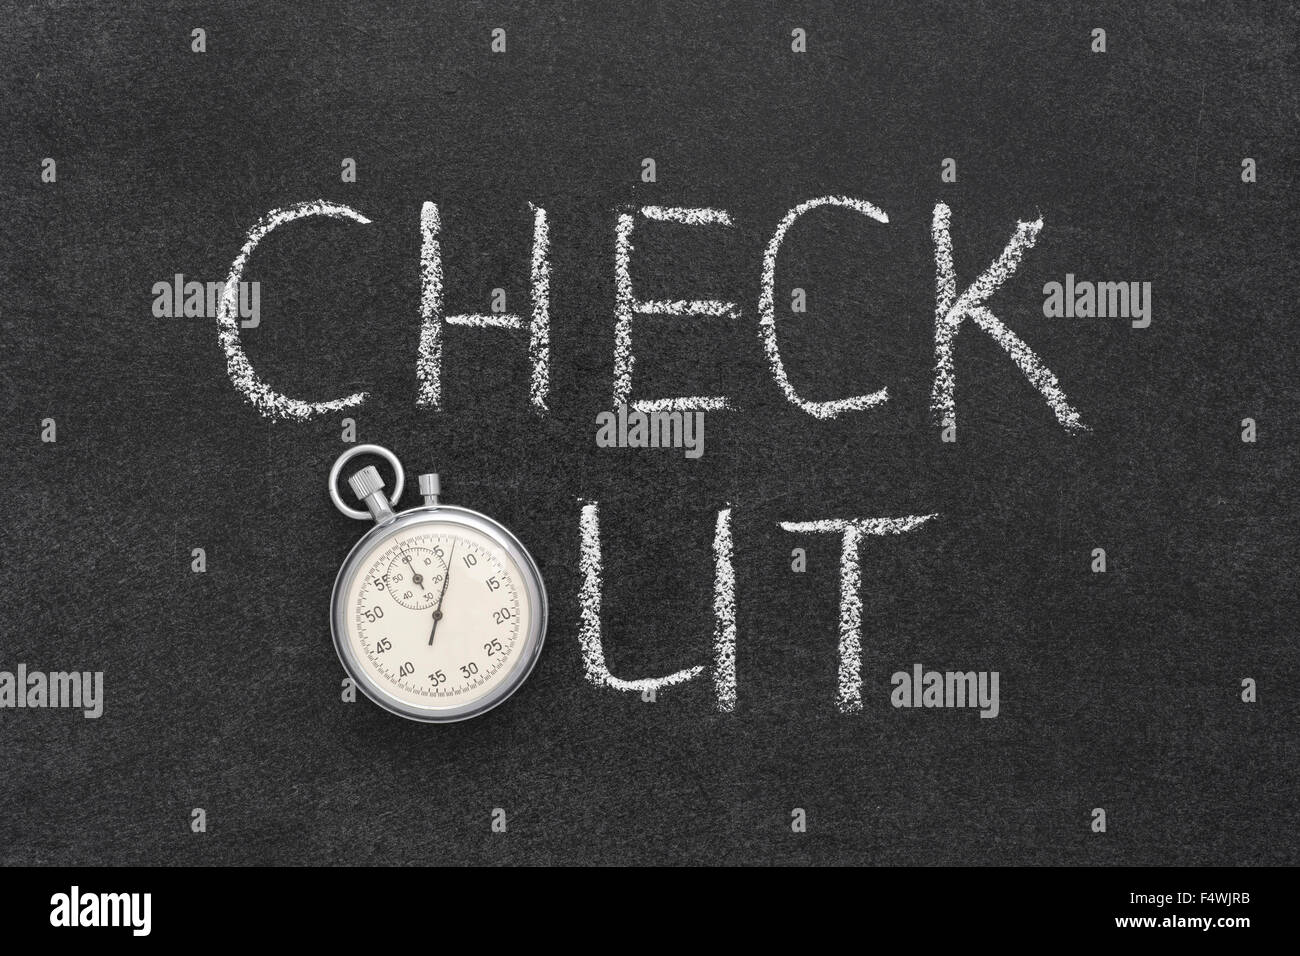 check out phrase handwritten on chalkboard with vintage precise stopwatch used instead of O - Stock Image